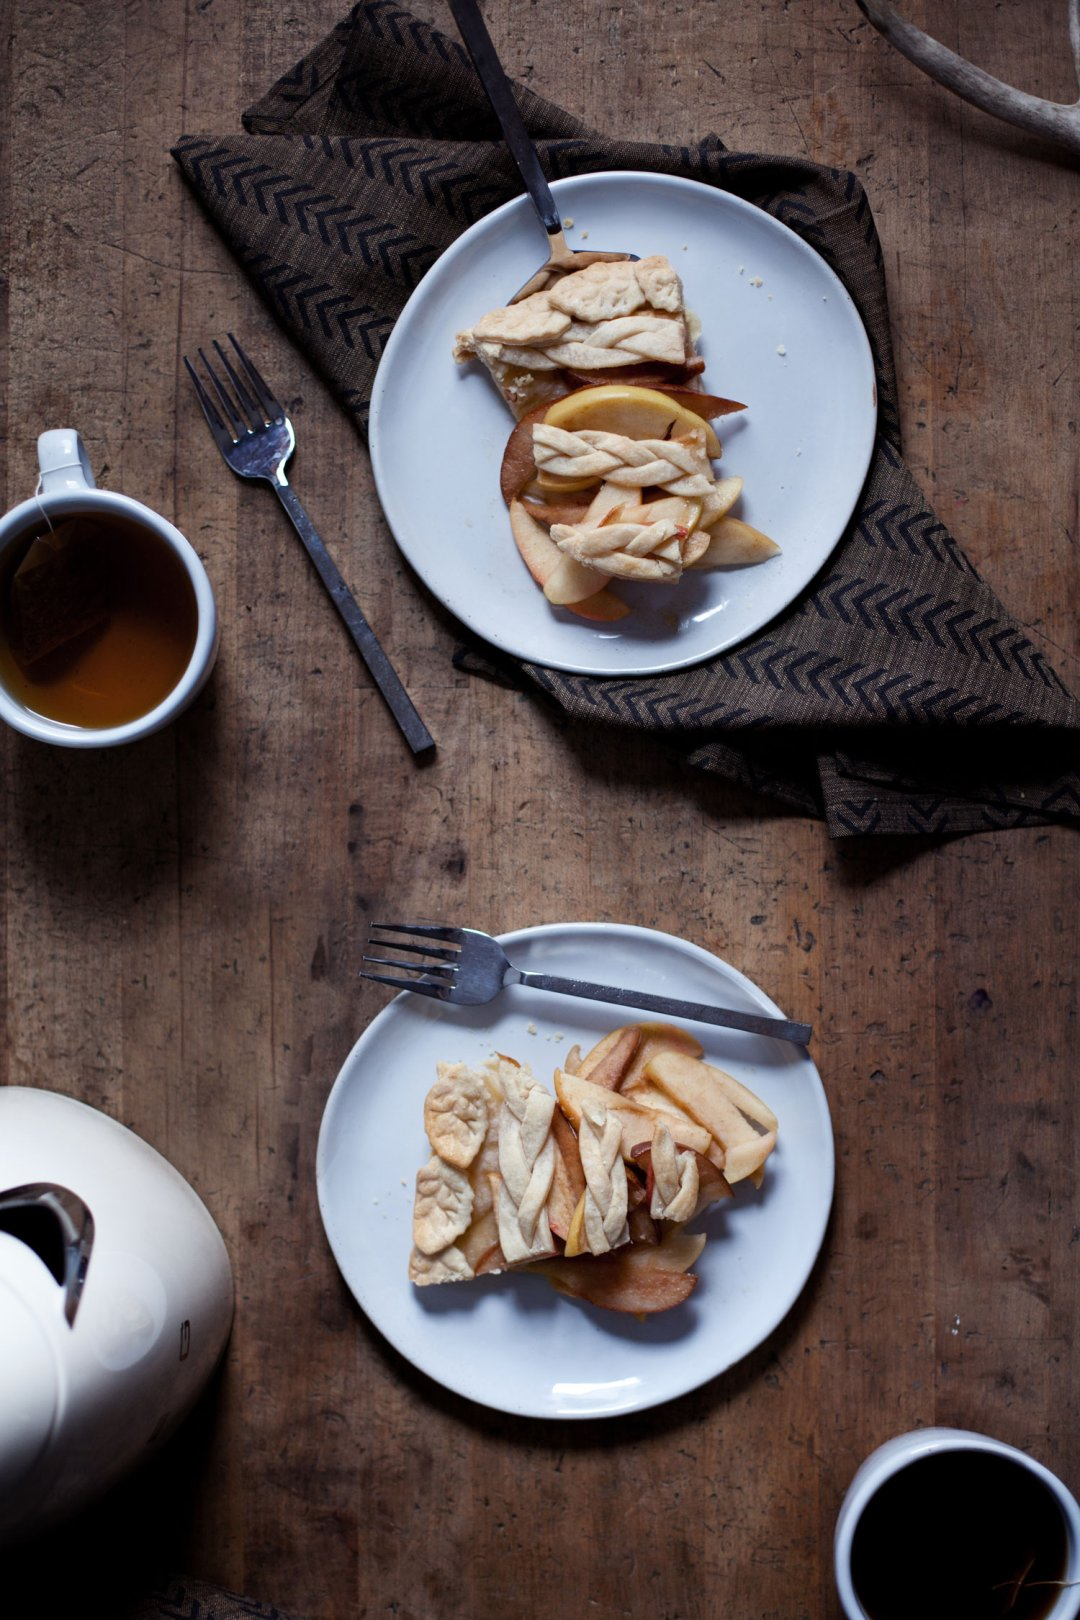 Two slices of apple an pear pie on plates served with tea